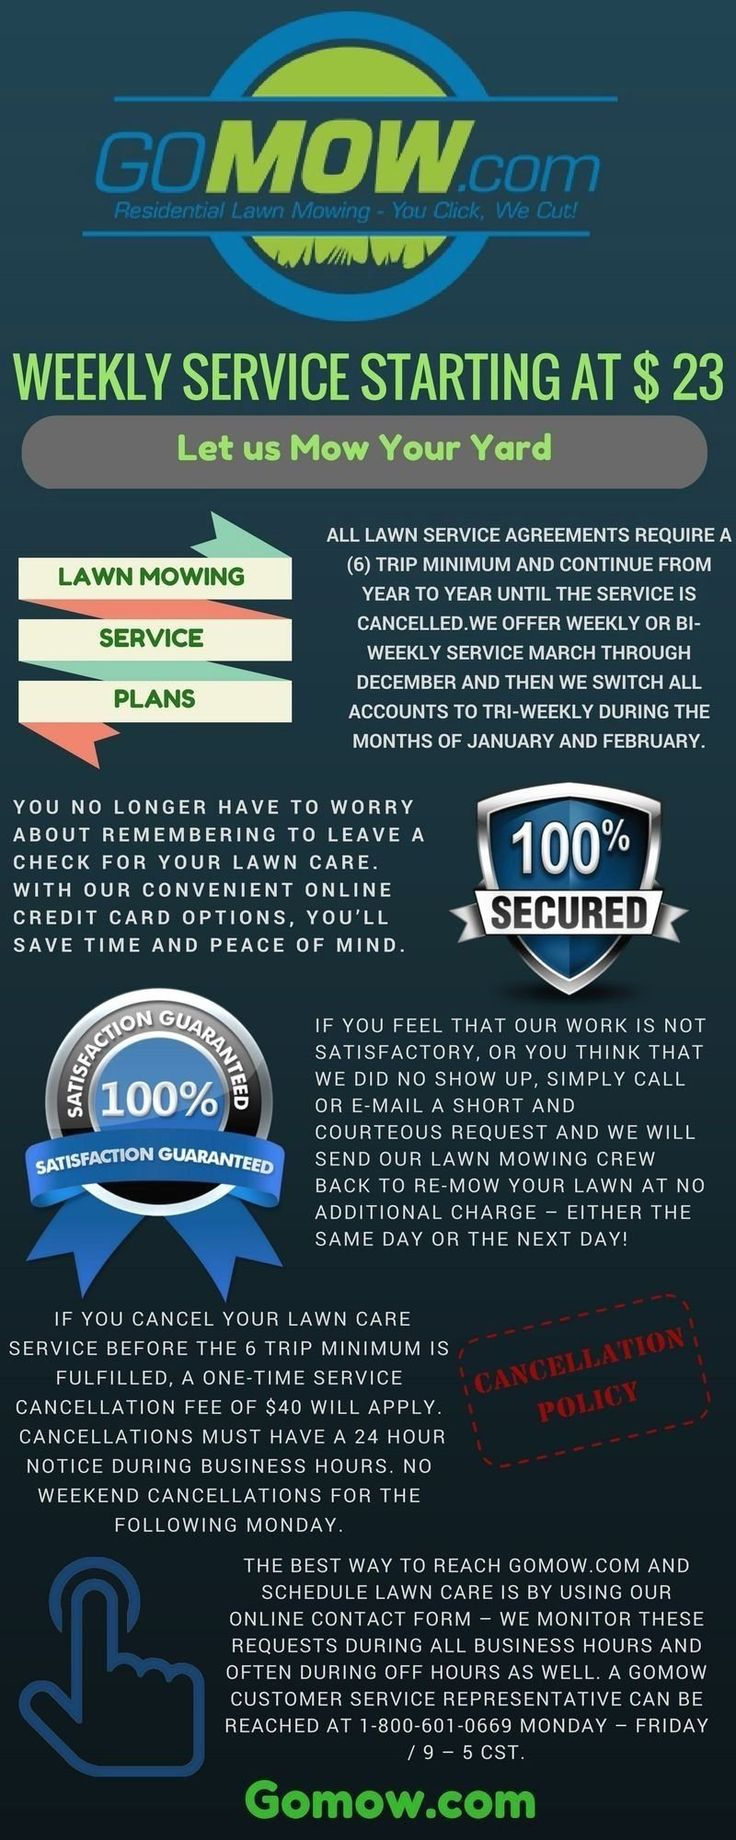 Affordable Lawn Care Cost, Lawn Mowing Services Plans